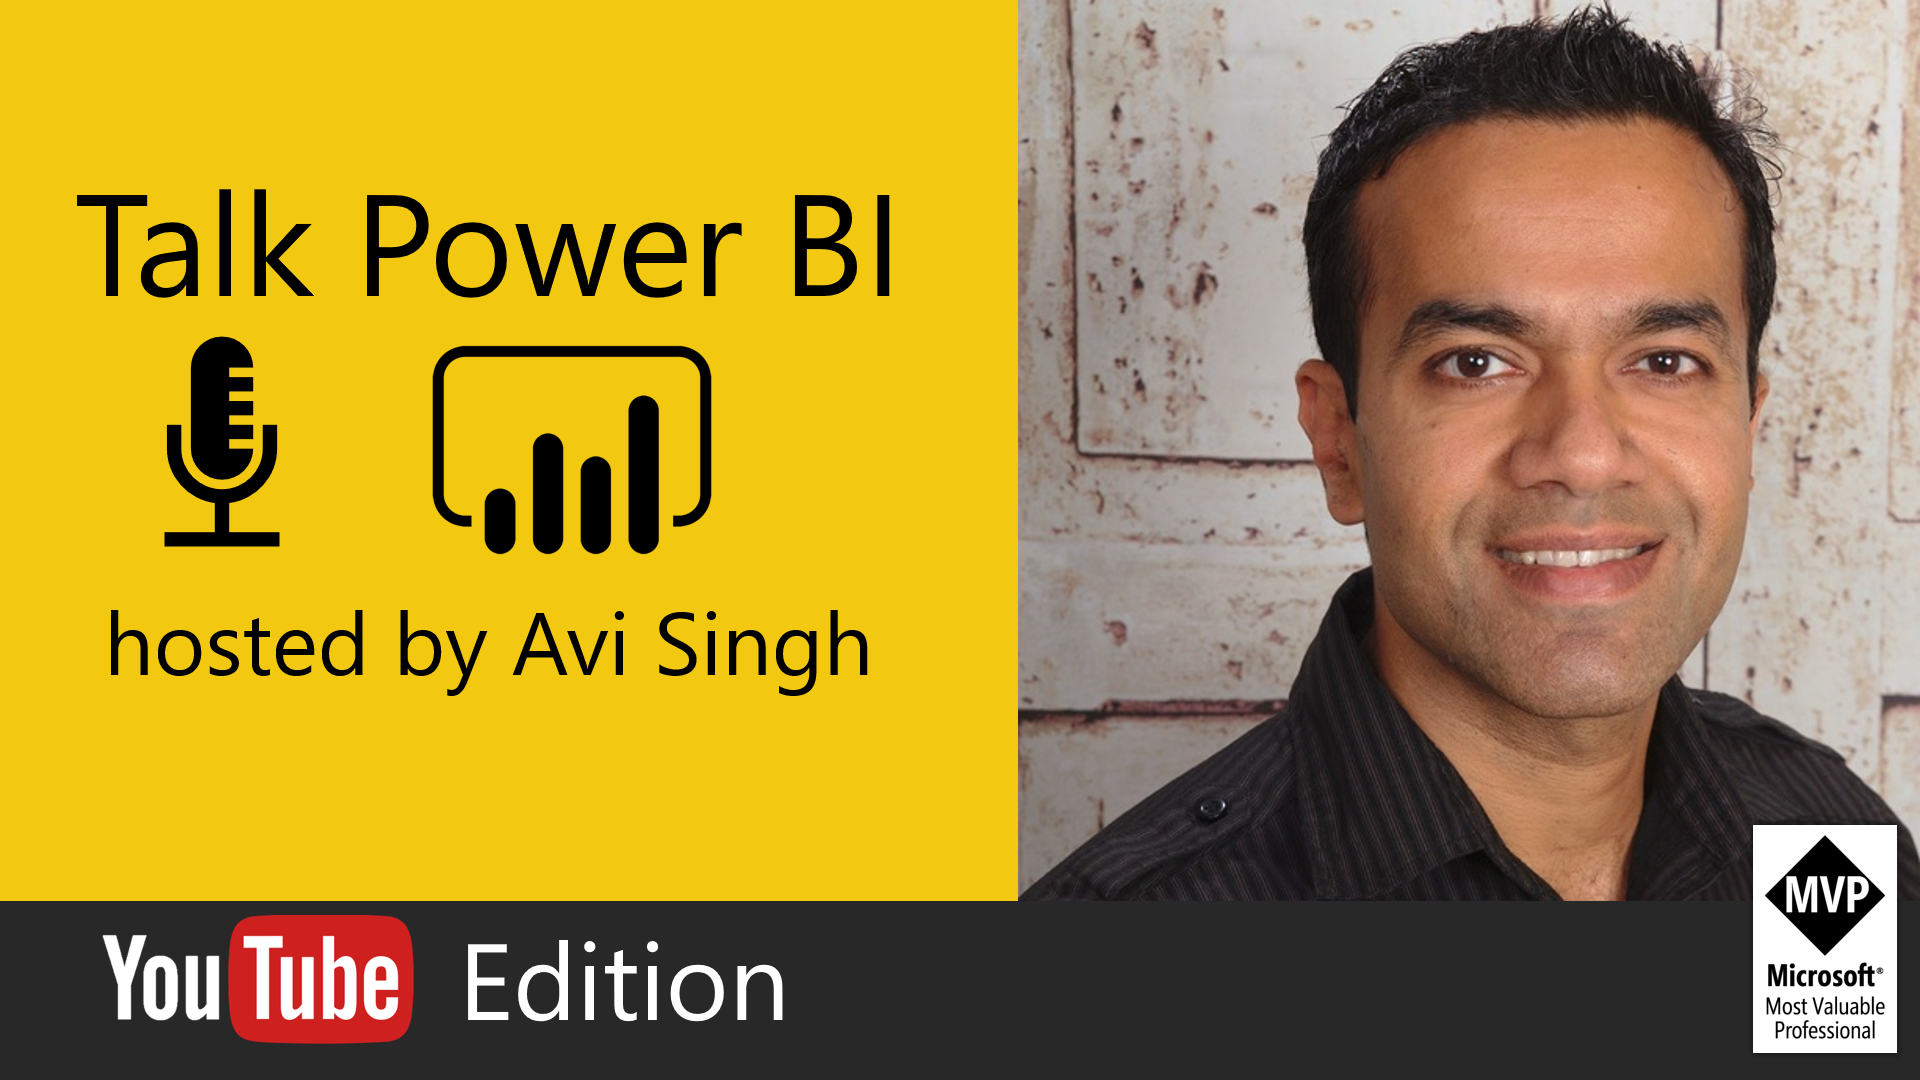 Talk Power BI: LIVE Discussion and Q&A Forum